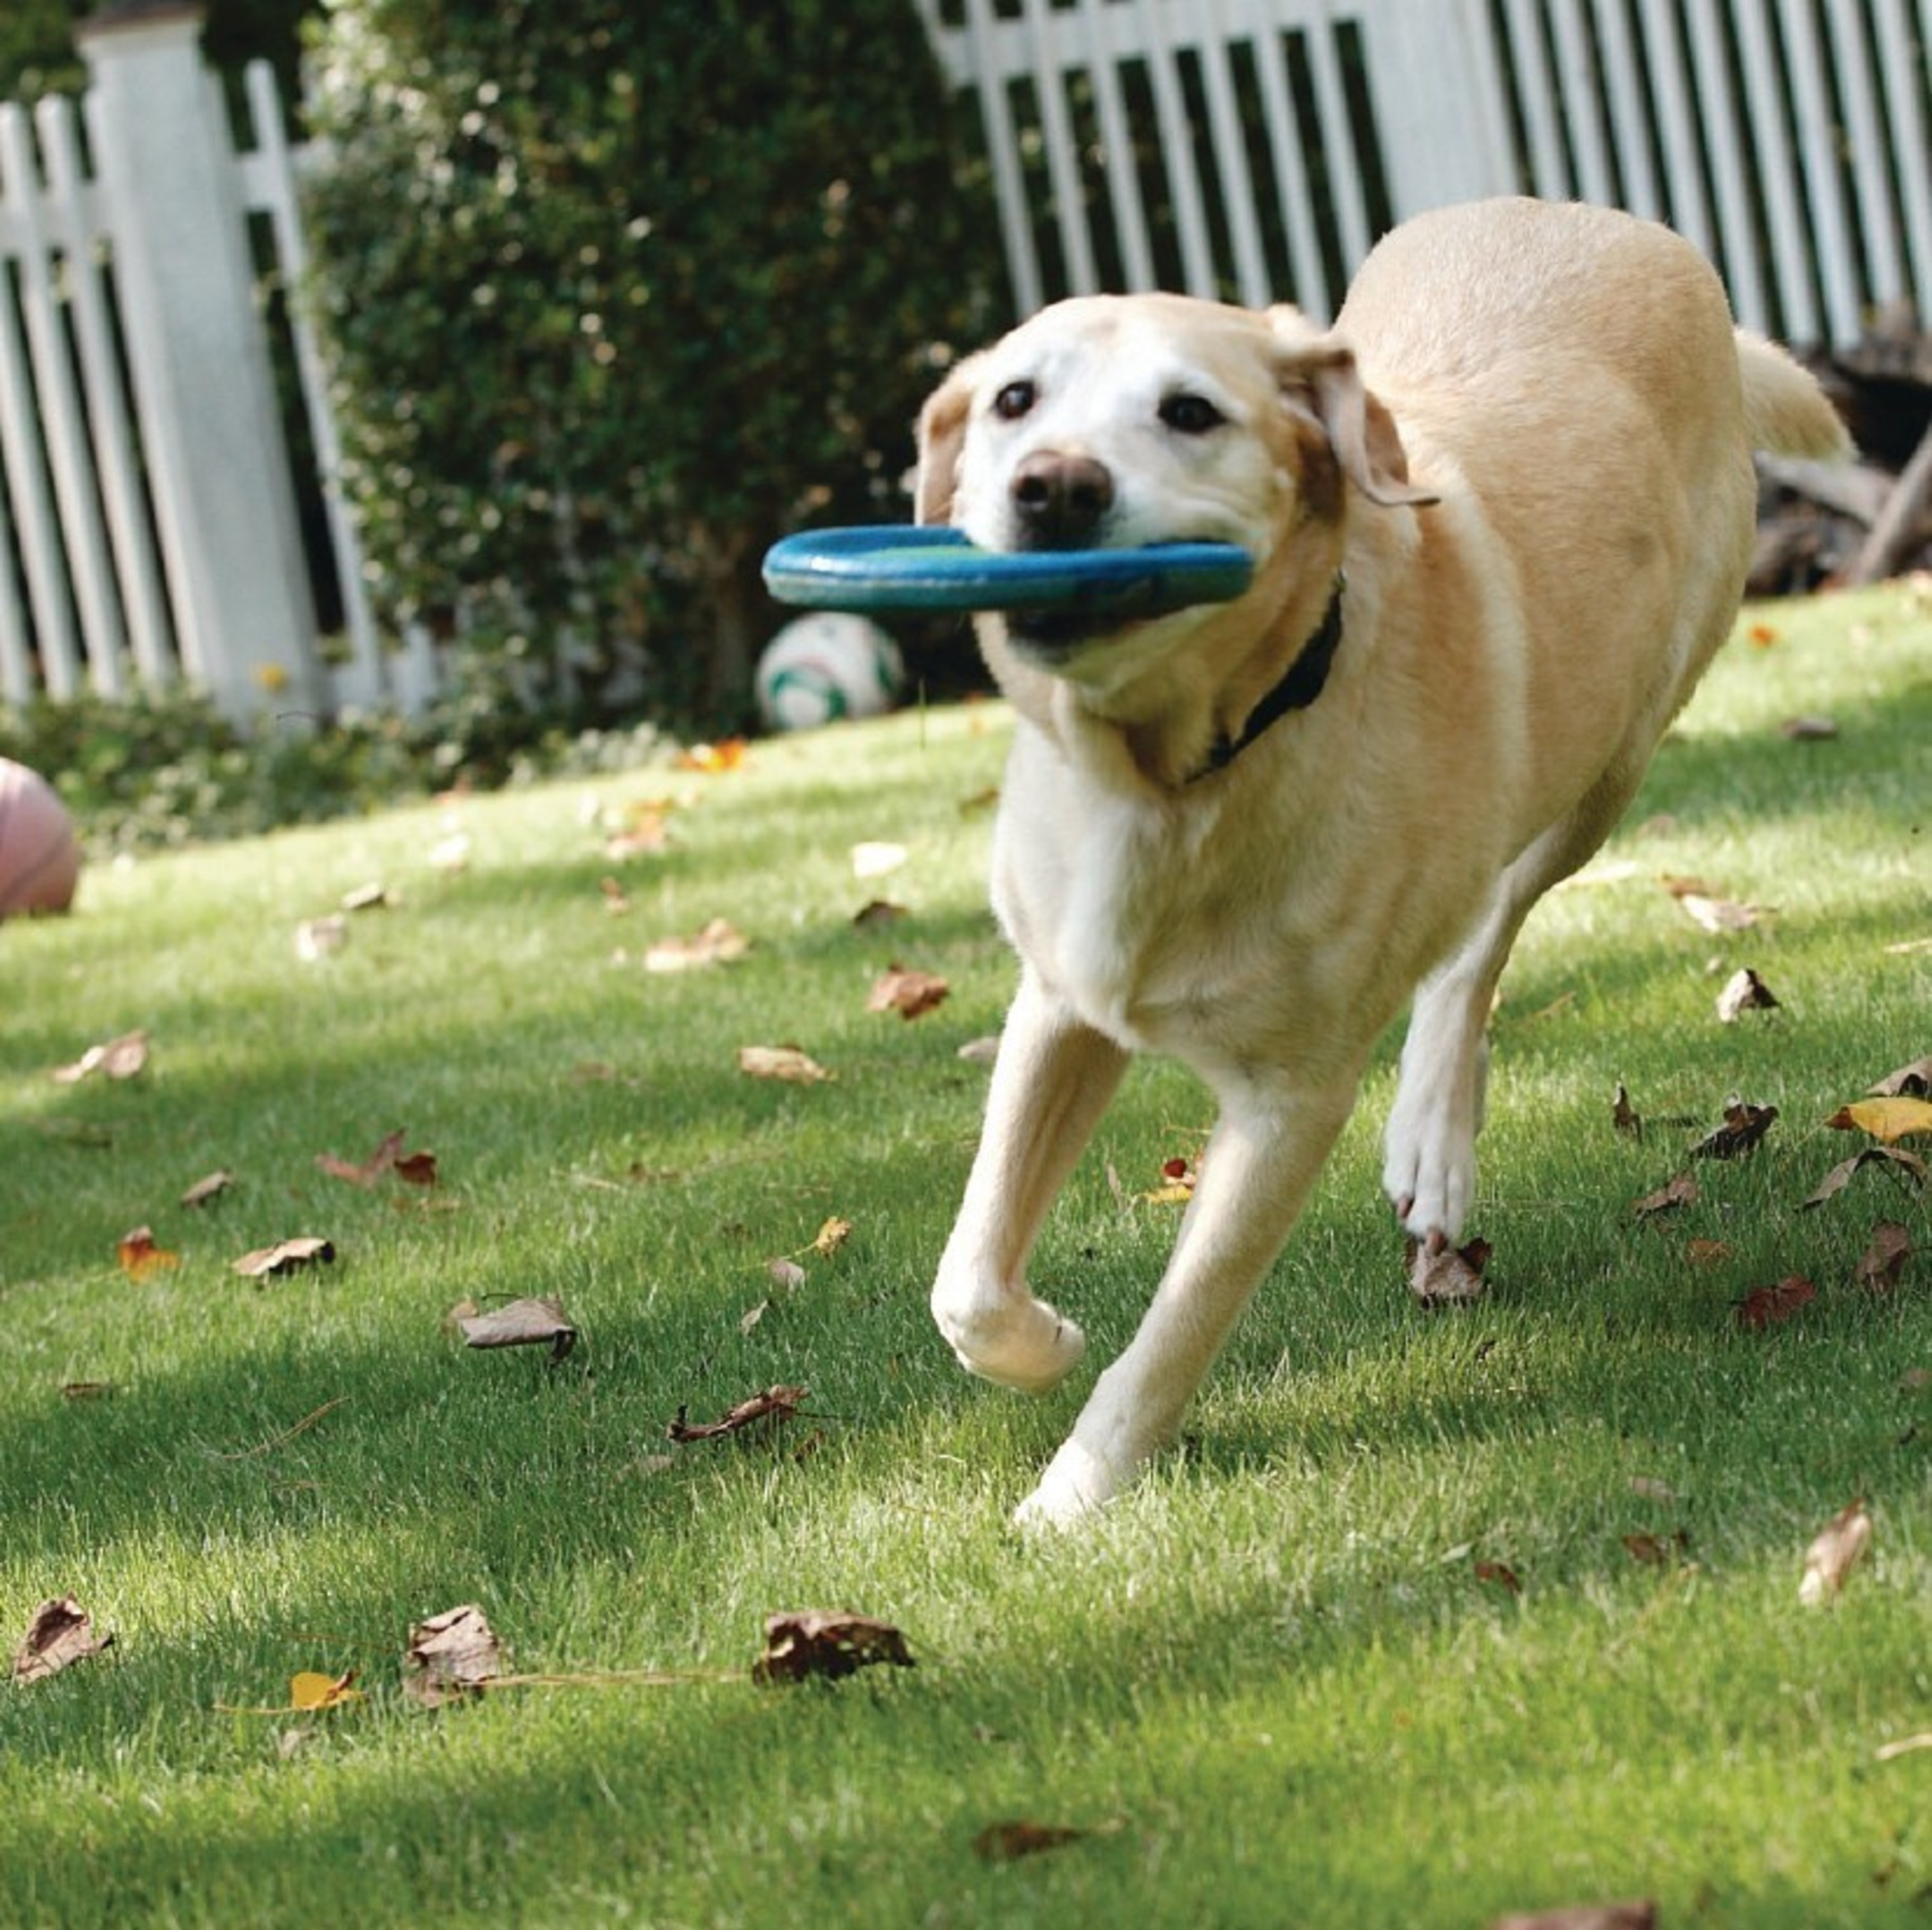 Diabetes in dogs is manageable. Using the right tools, including at-home monitoring specific for canines, can aid in better outcomes.